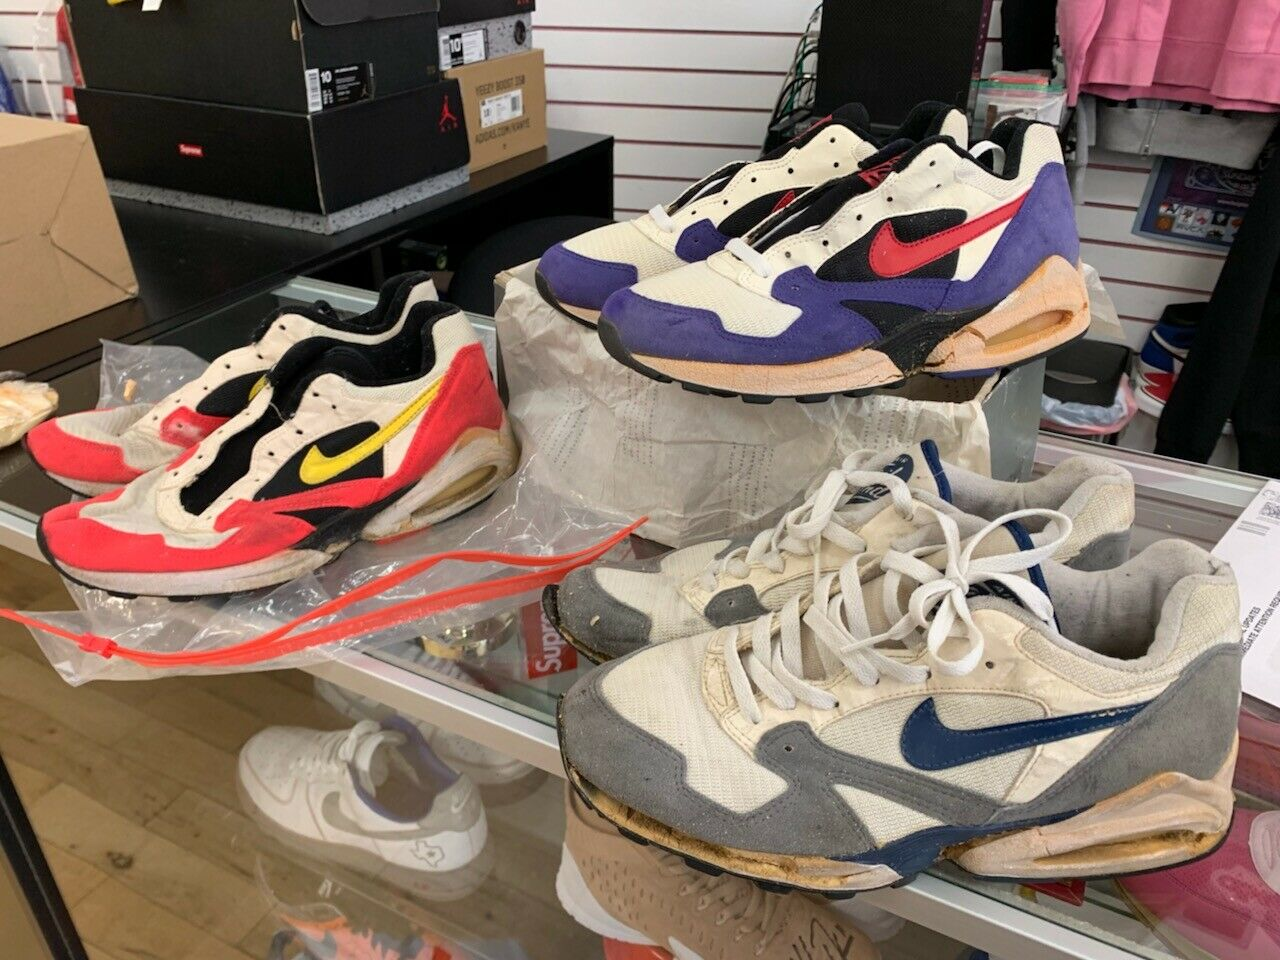 Lot Vintage Nike Air Max Tailwind 1992 original 1 off white 9 10 DS anniversary